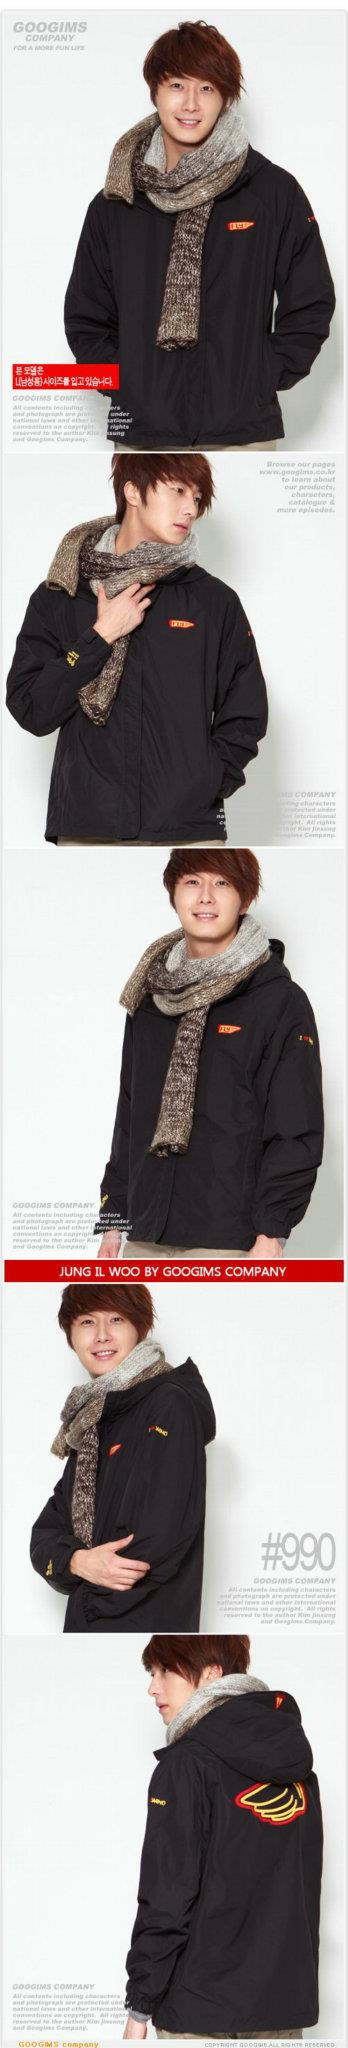 2011 10 Jung II-woo for Googims. Part 3 00011